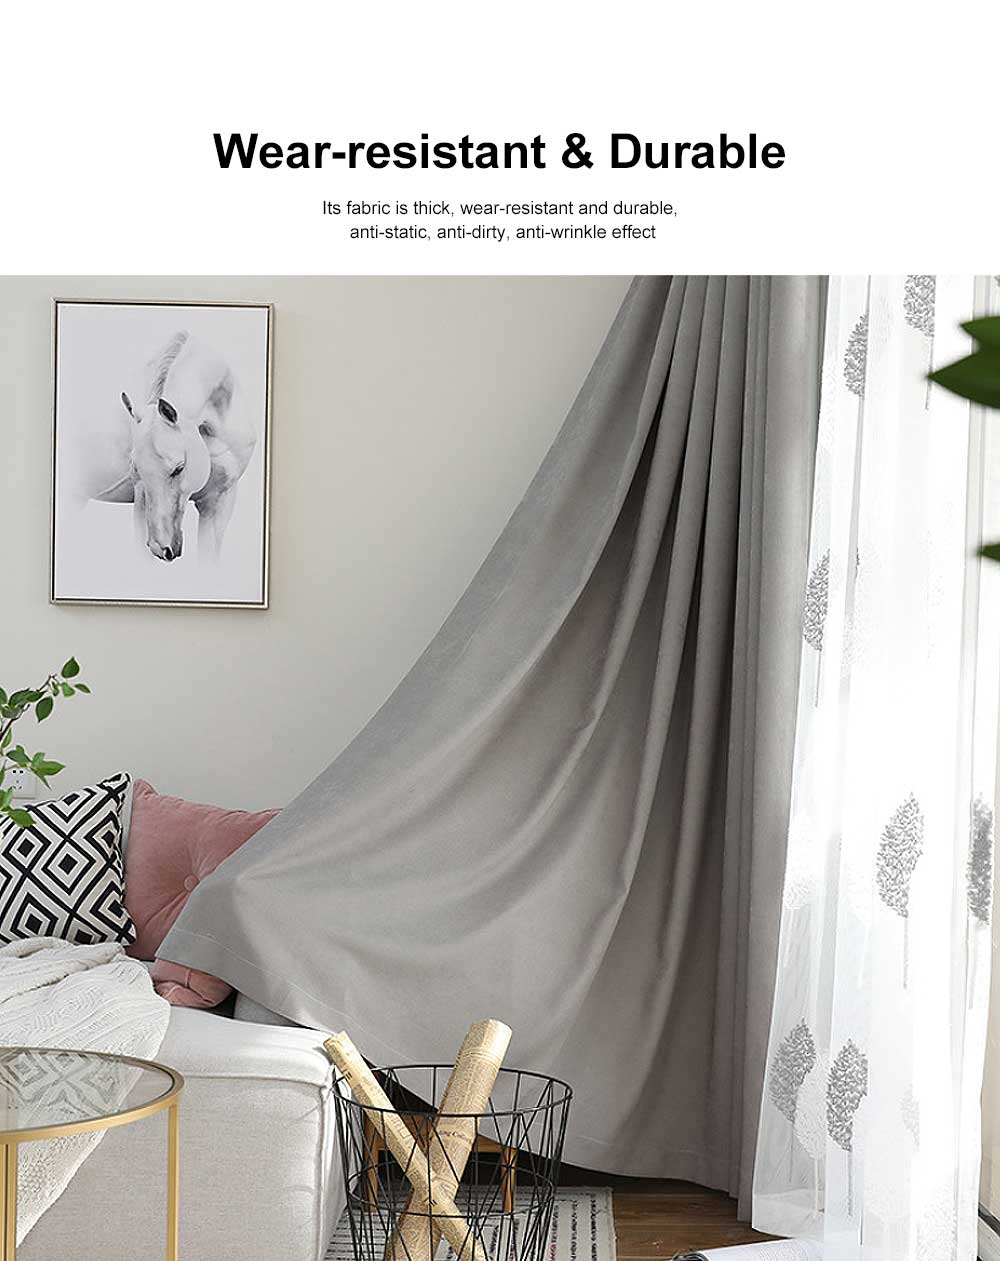 5 Color Nordic Style Curtain, Solid Color Curtains for Living Room Bedroom, Modern Minimalist Blackout Curtain 5